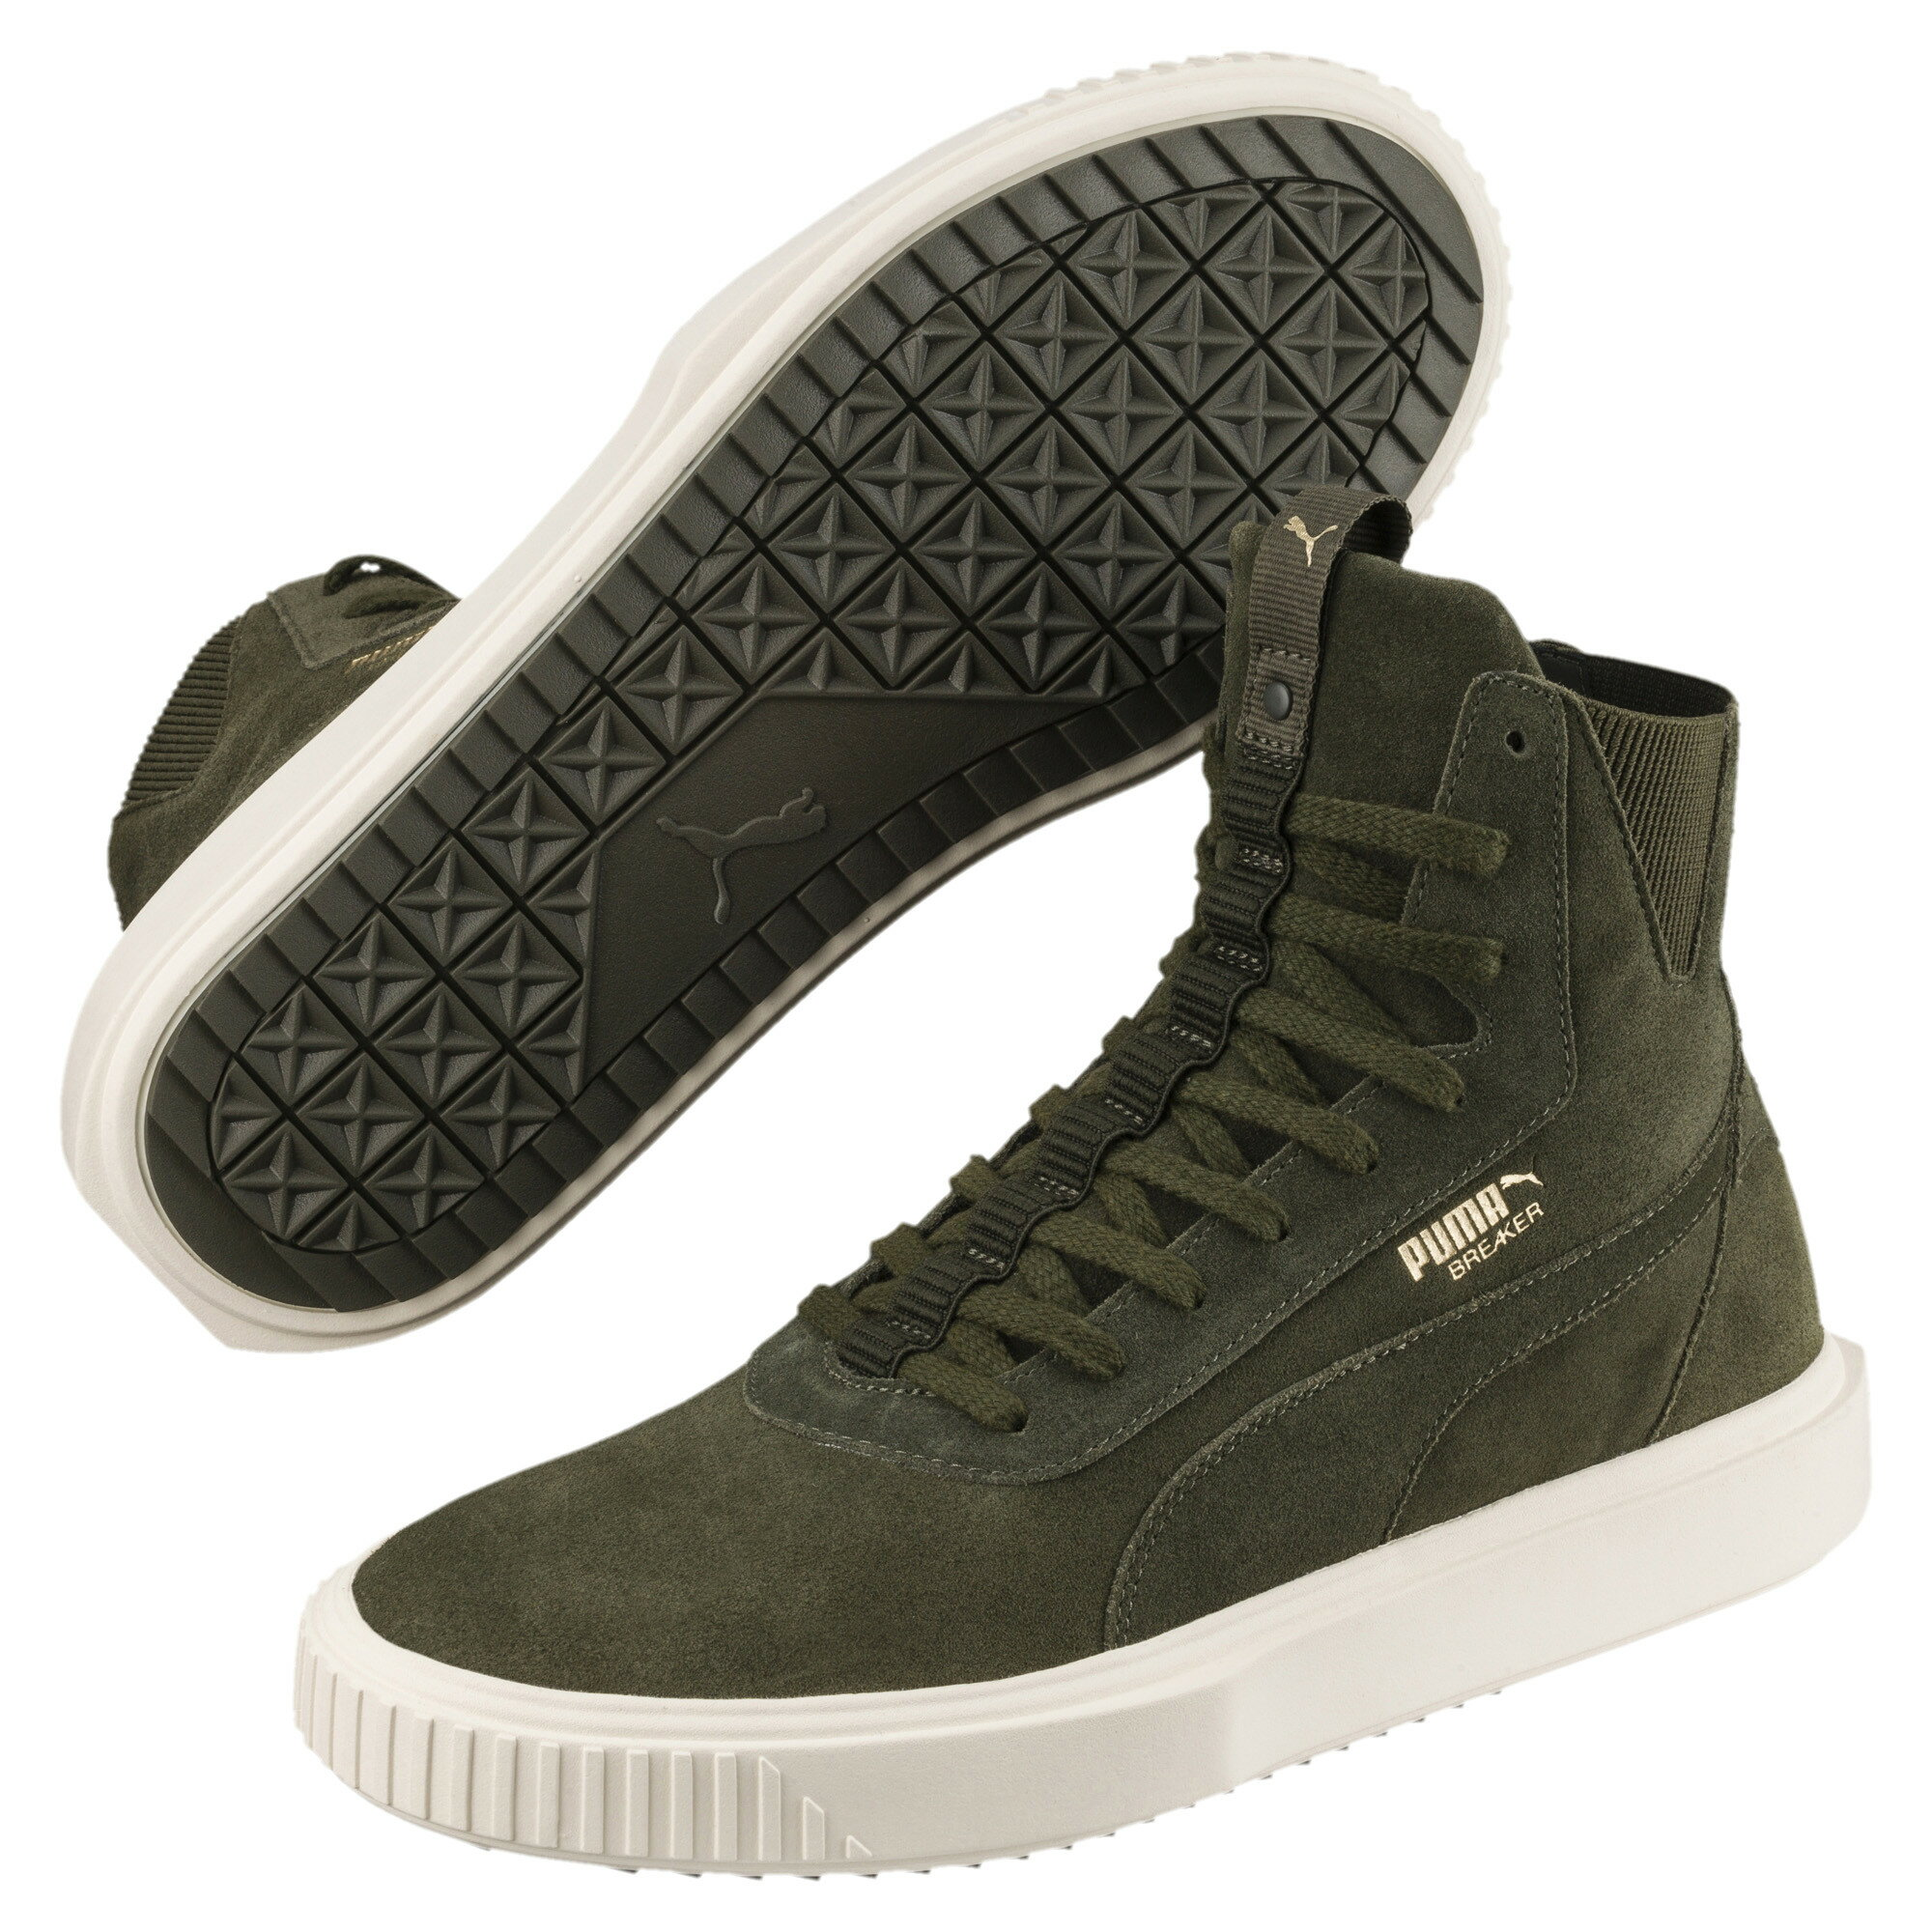 08df1826260833 Rakuten Home · Official Puma Store. PUMA Breaker Hi Evolution Sneakers 0